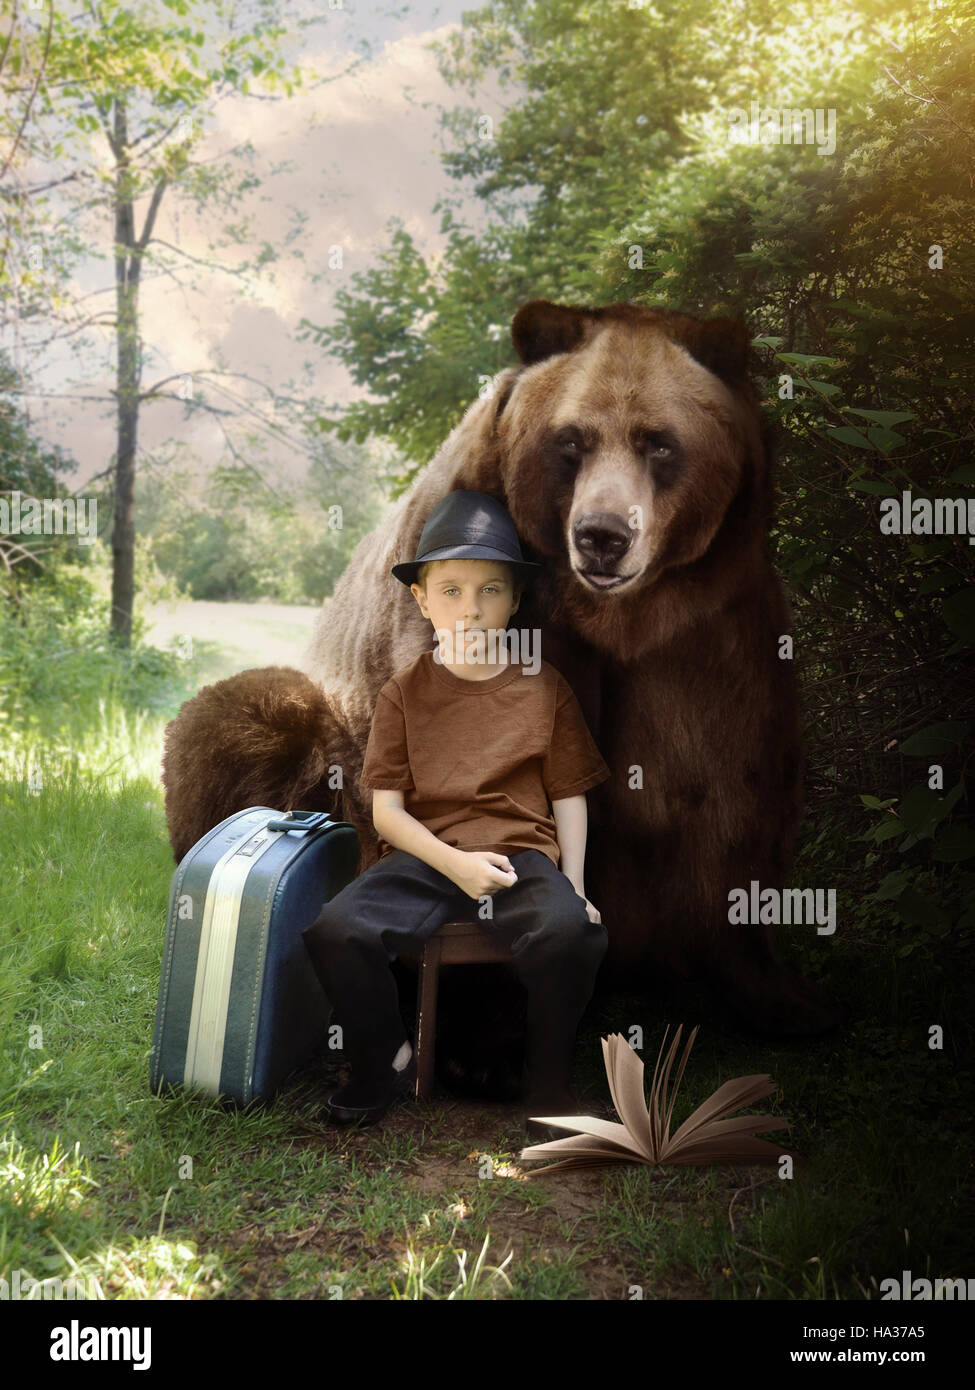 A young boy is sitting on a nature trail in the woods with a suitcase and book with a bear animal behind him for - Stock Image